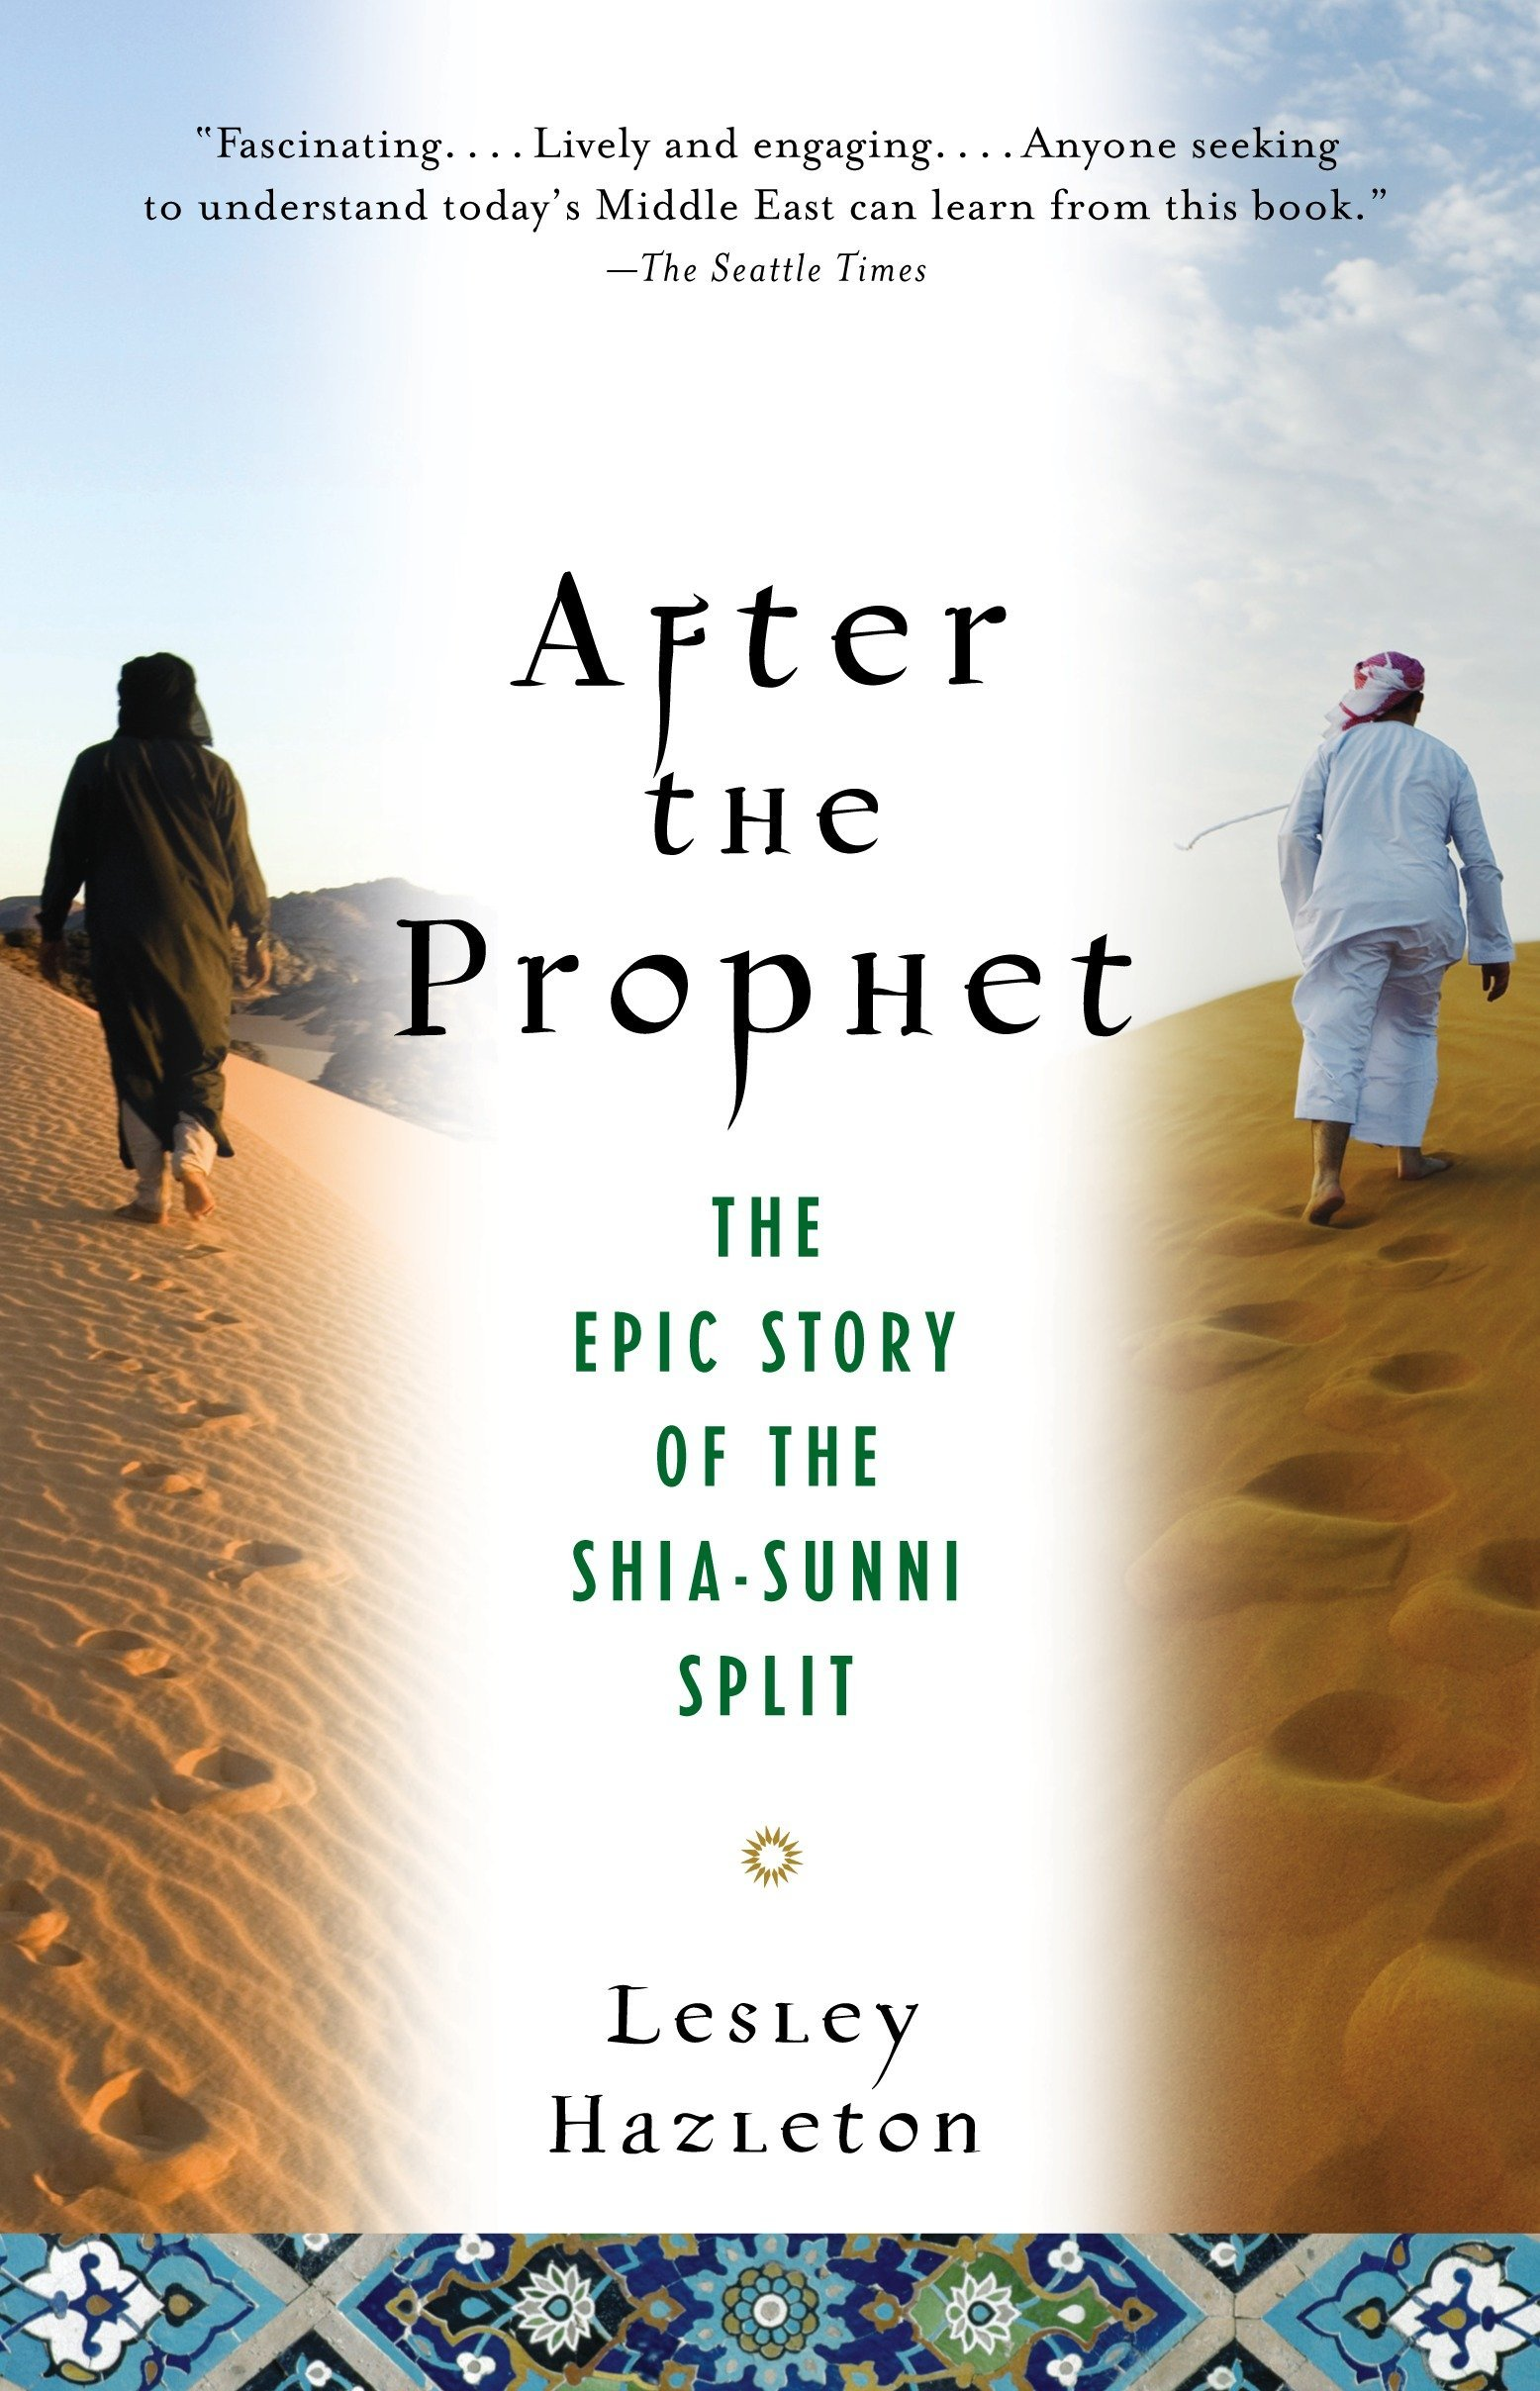 After the Prophet: The Epic Story of the Shia-Sunni